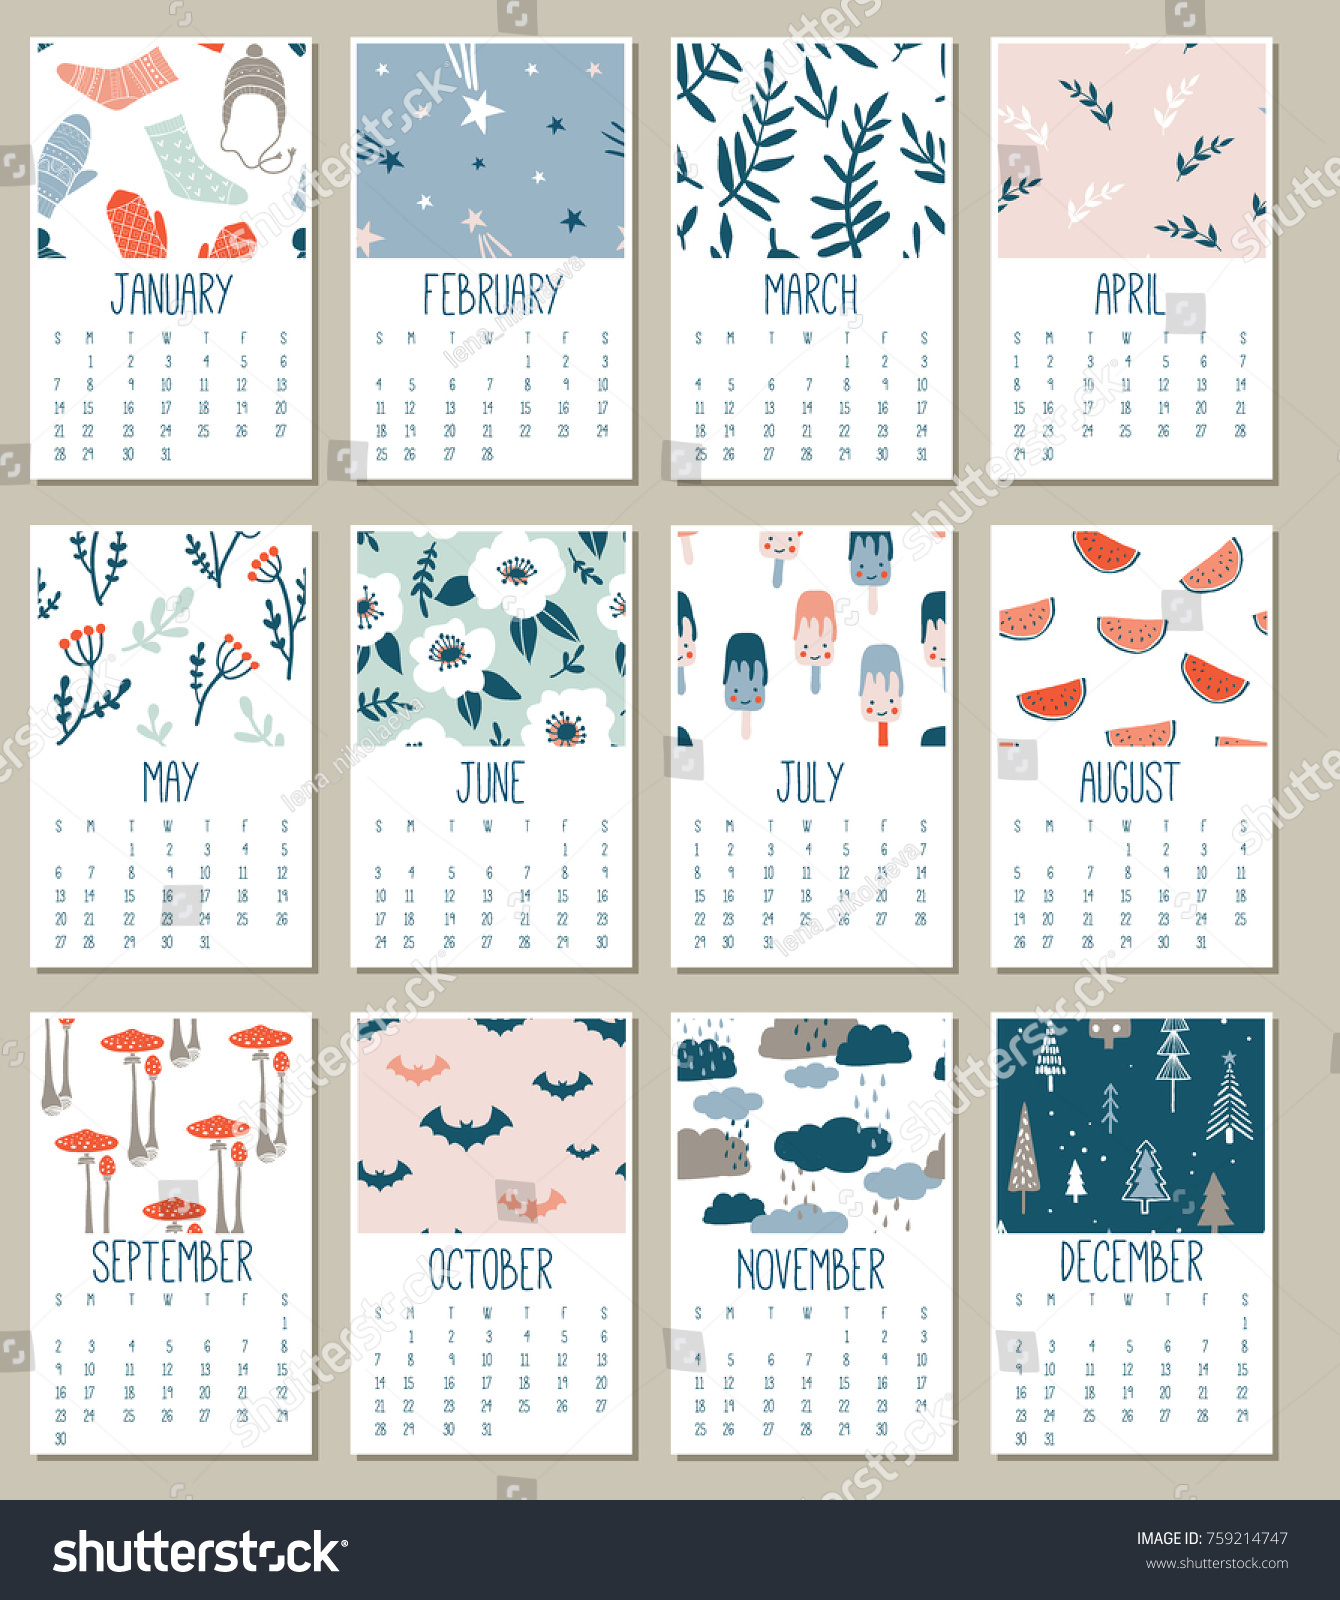 modern creative calendar 2018 templates with cute doodle hand drawn textures monthly calendar